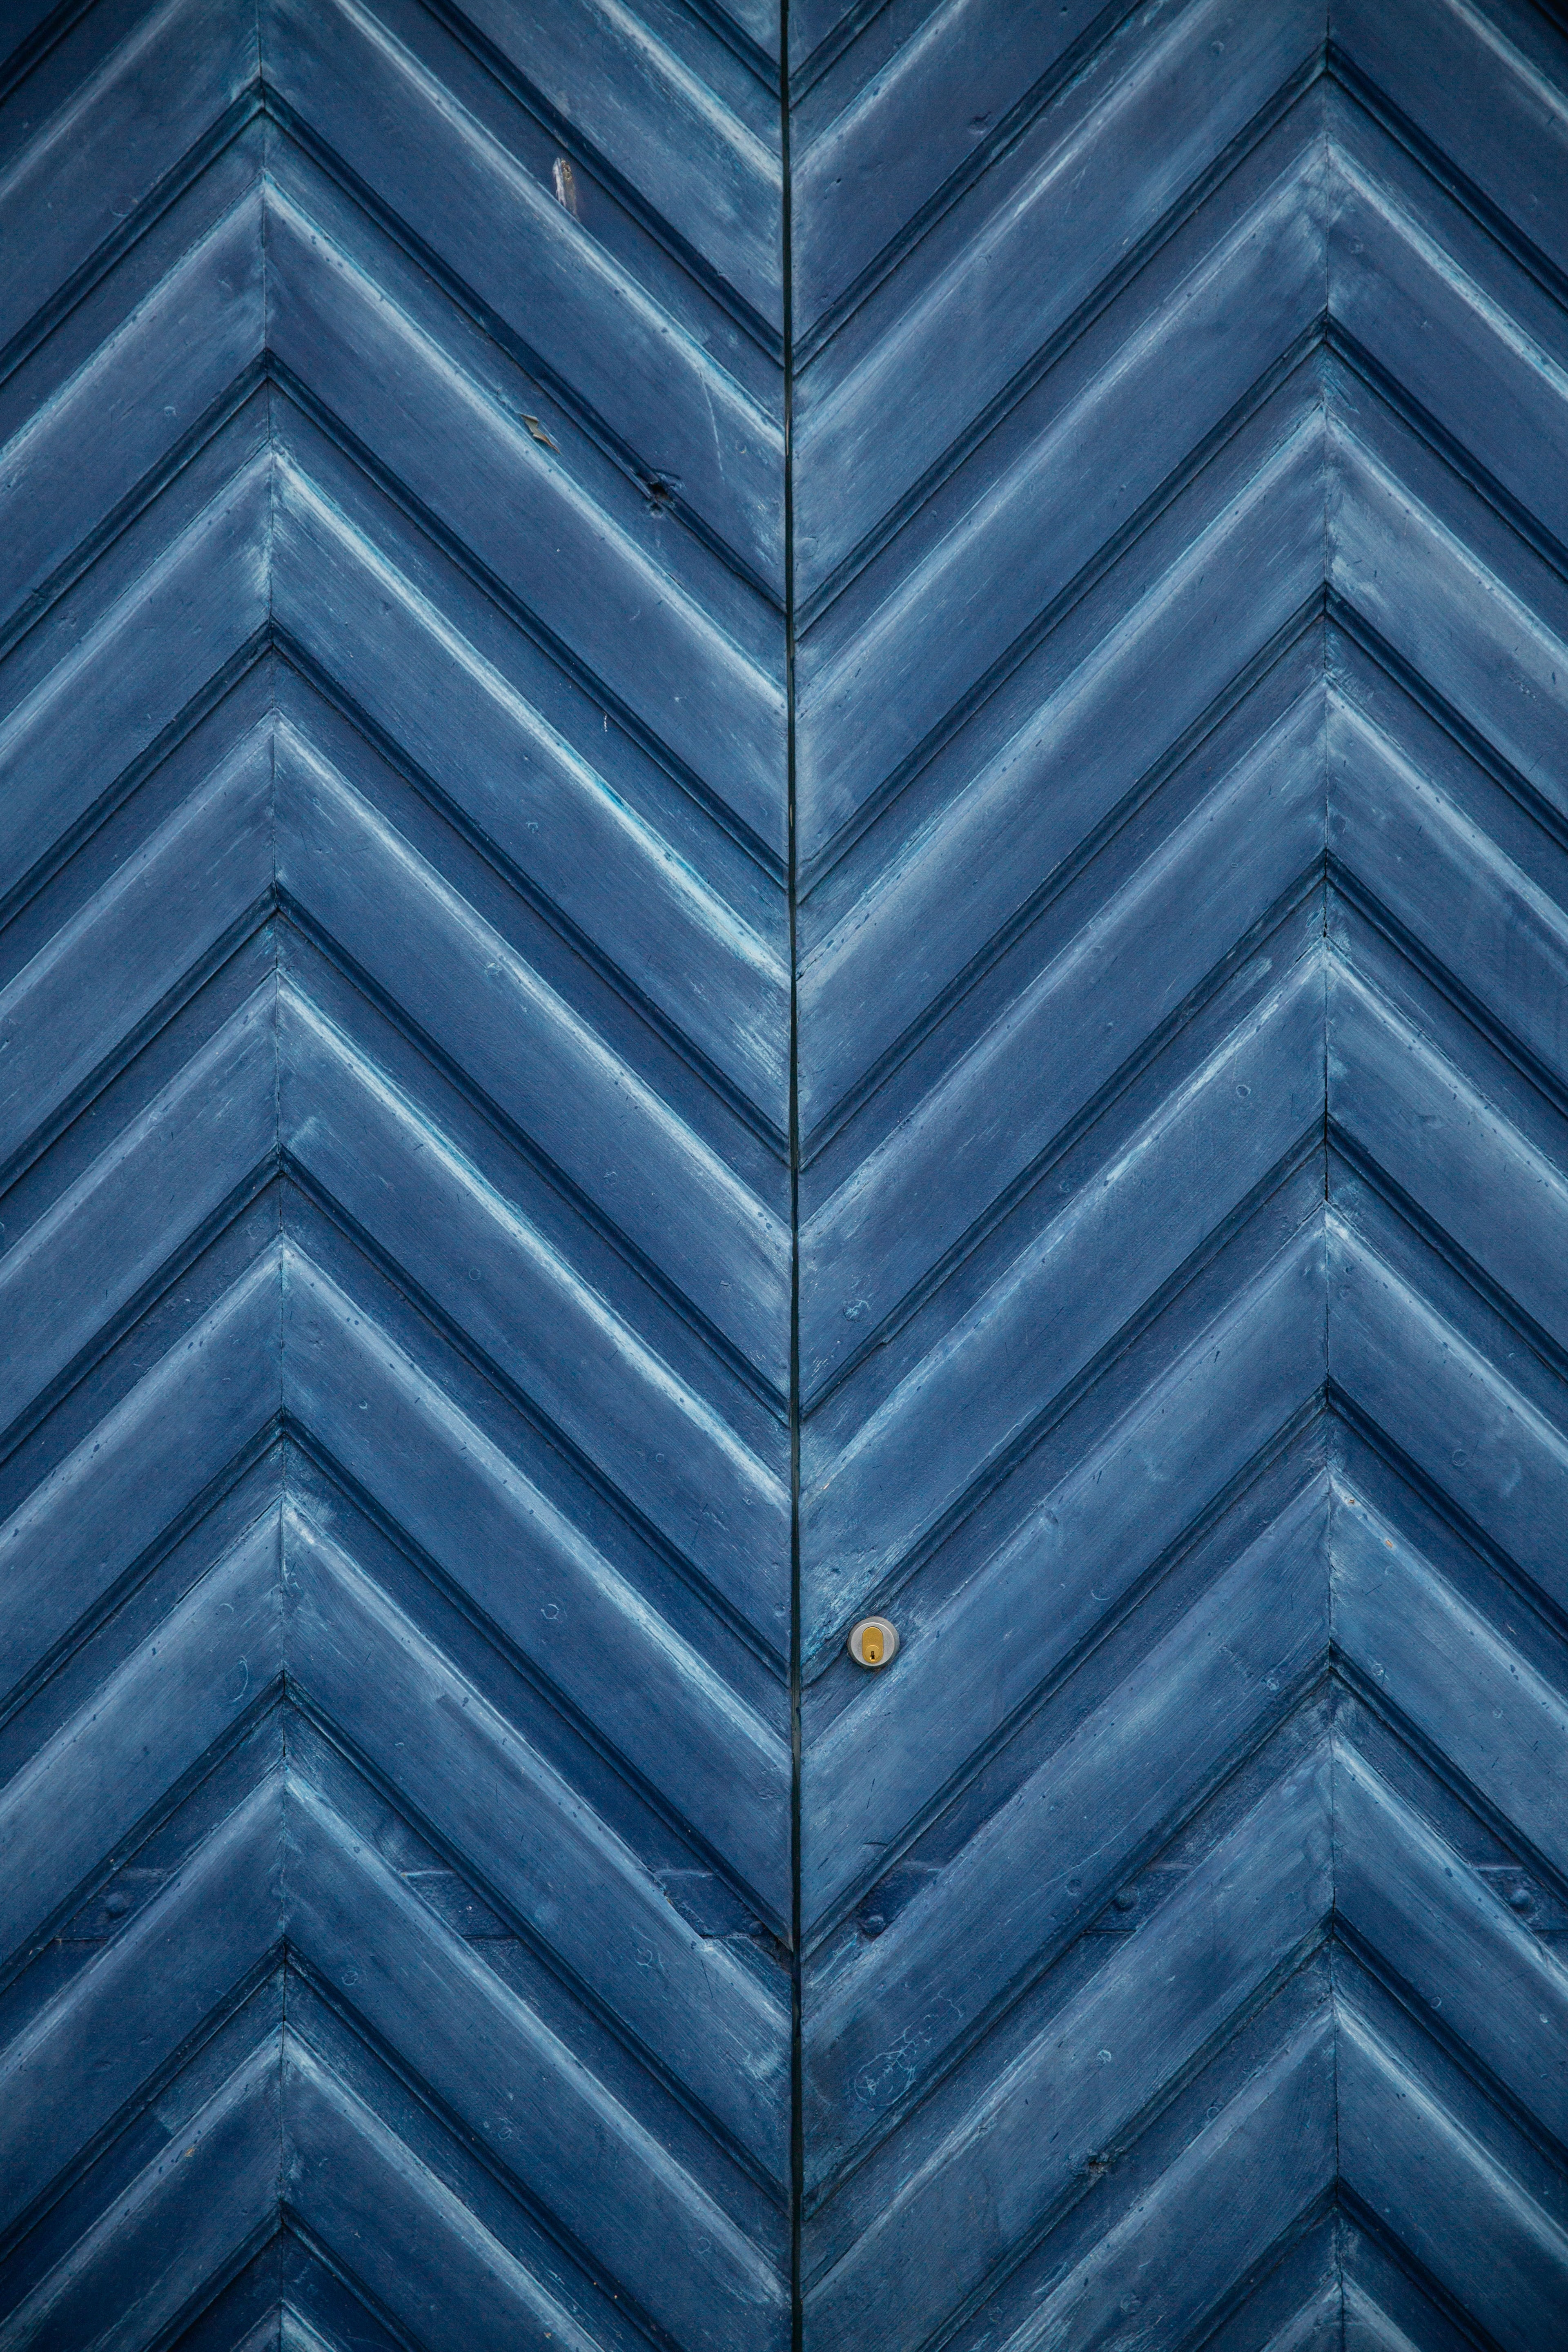 blue wooden chevron wall